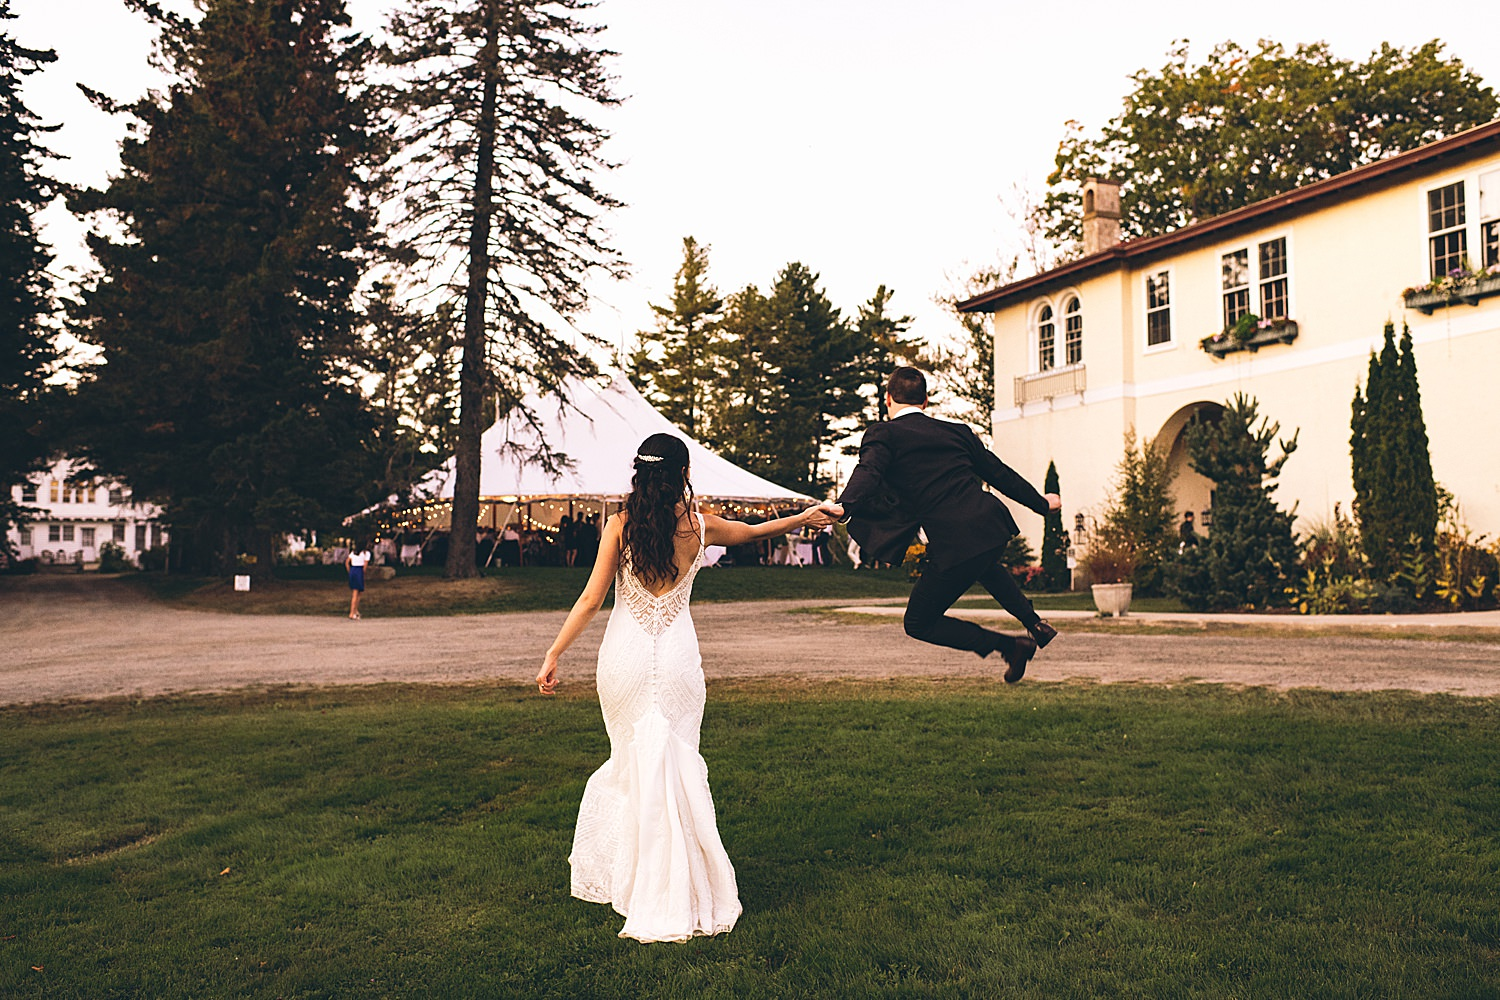 groom jumping and clicking heels